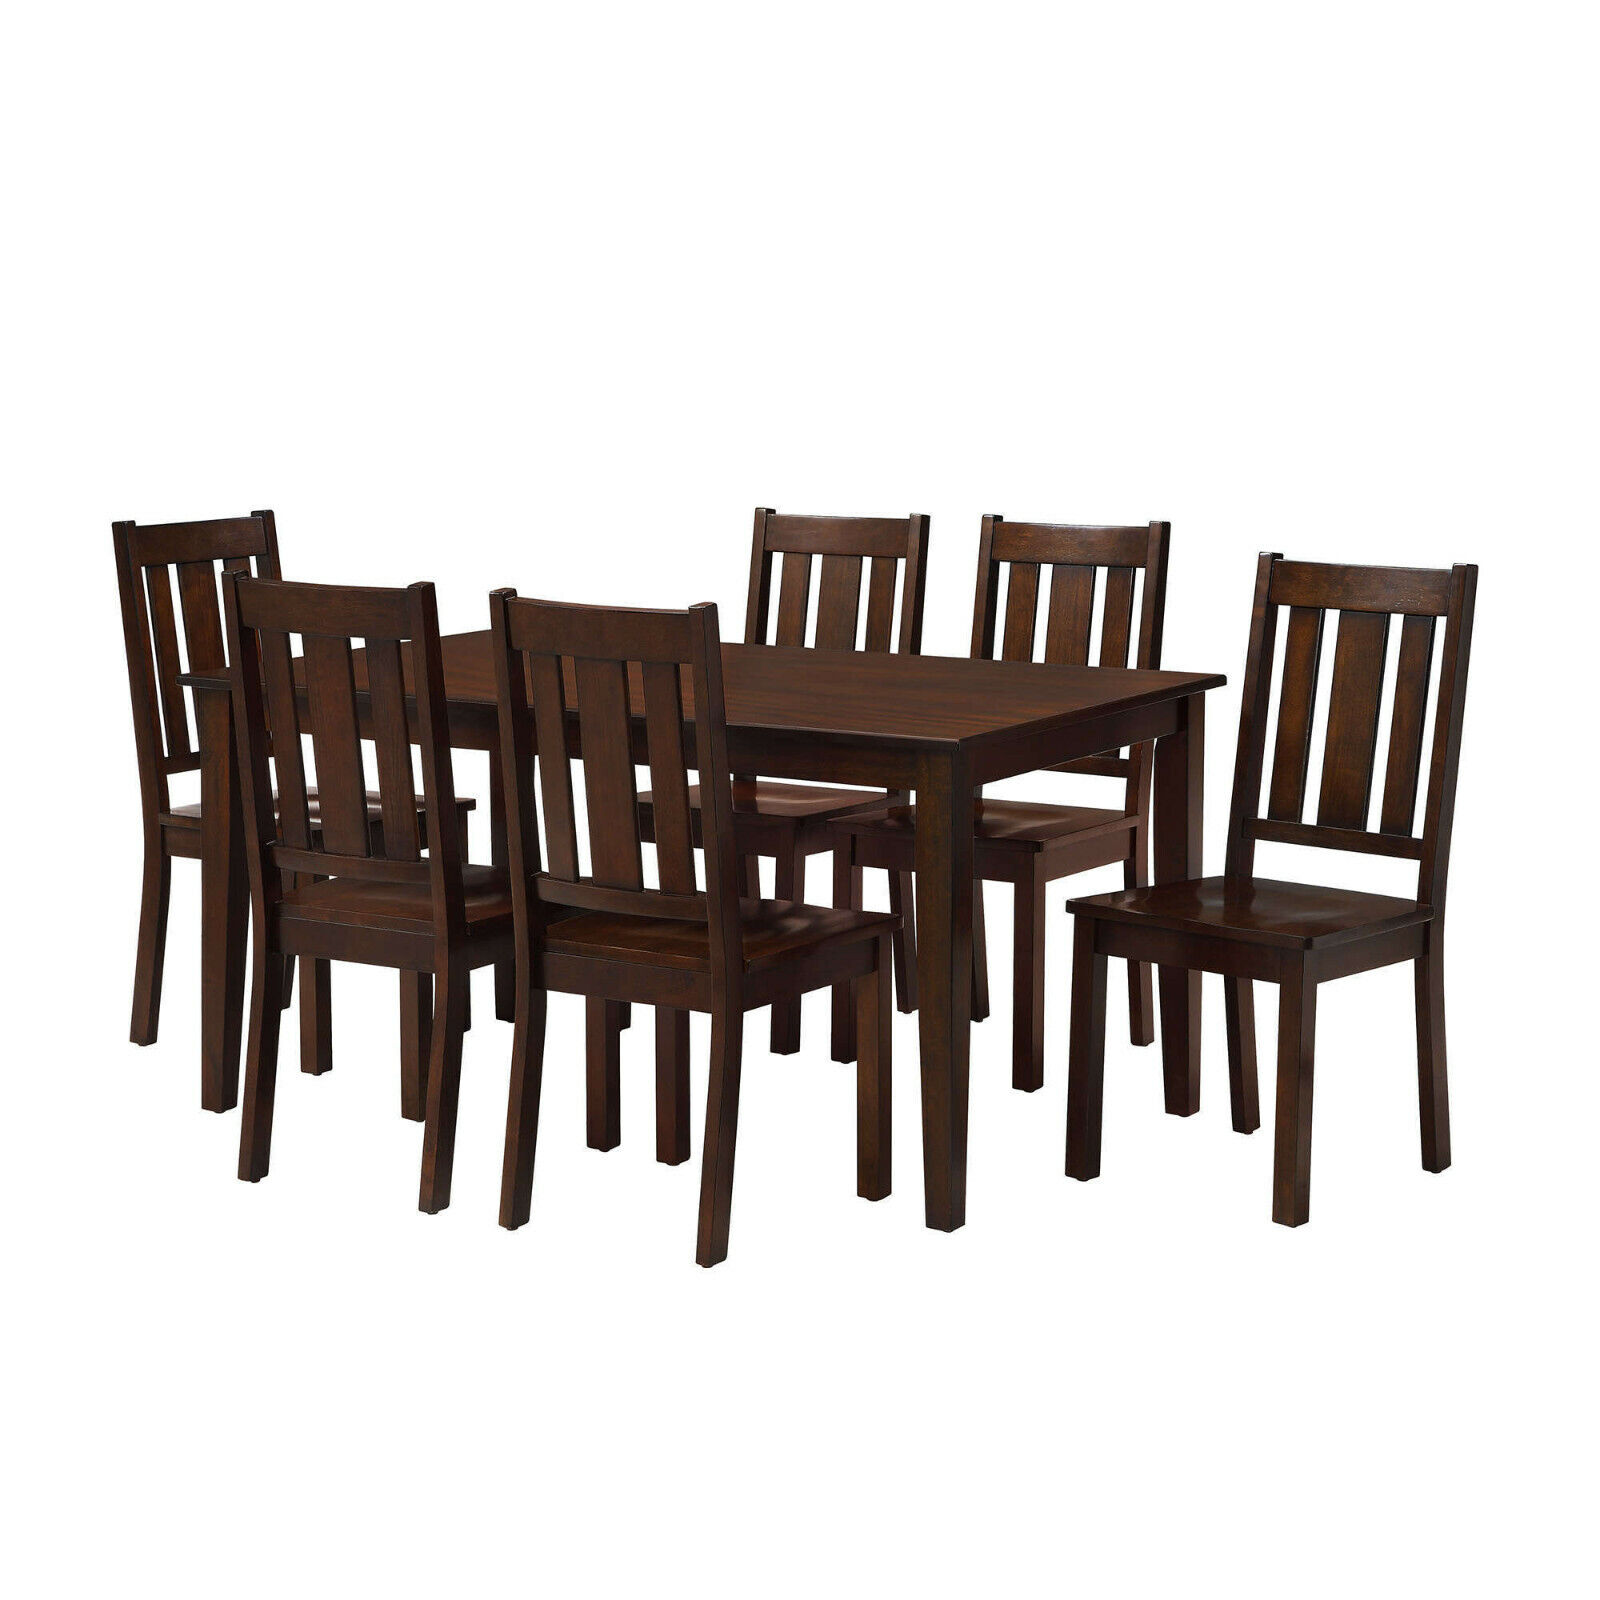 10 Piece Dining Room Table Set For 10 Farmhouse Wooden Kitchen Tables and  Chairs